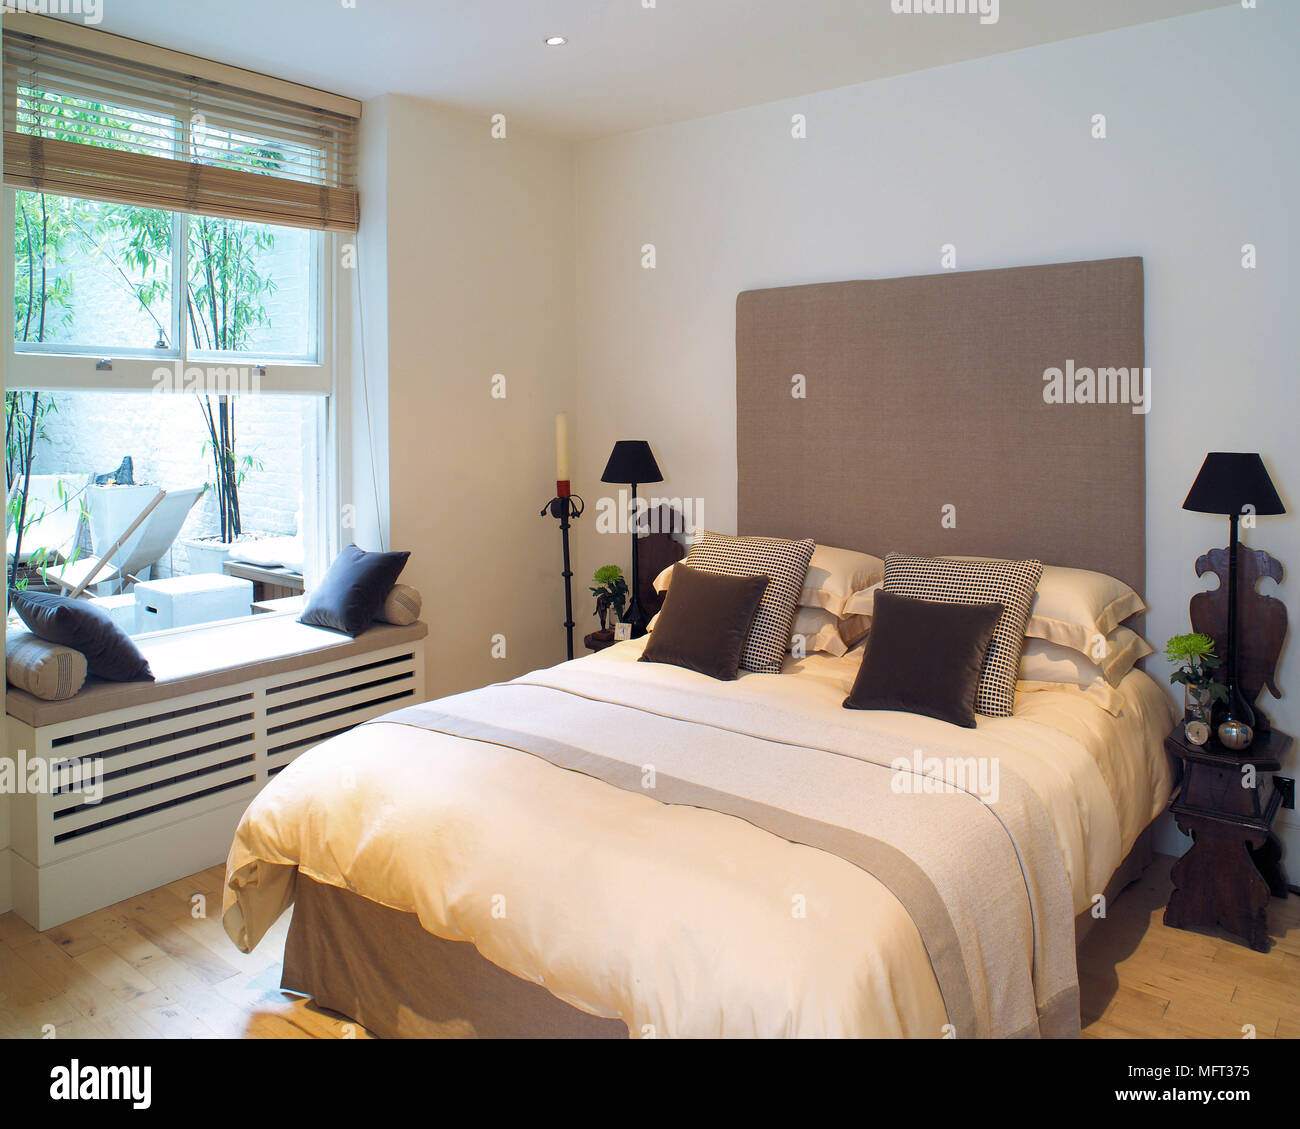 https www alamy com modern white bedroom bed upholstered headboard window seat interiors bedrooms beds image181852921 html